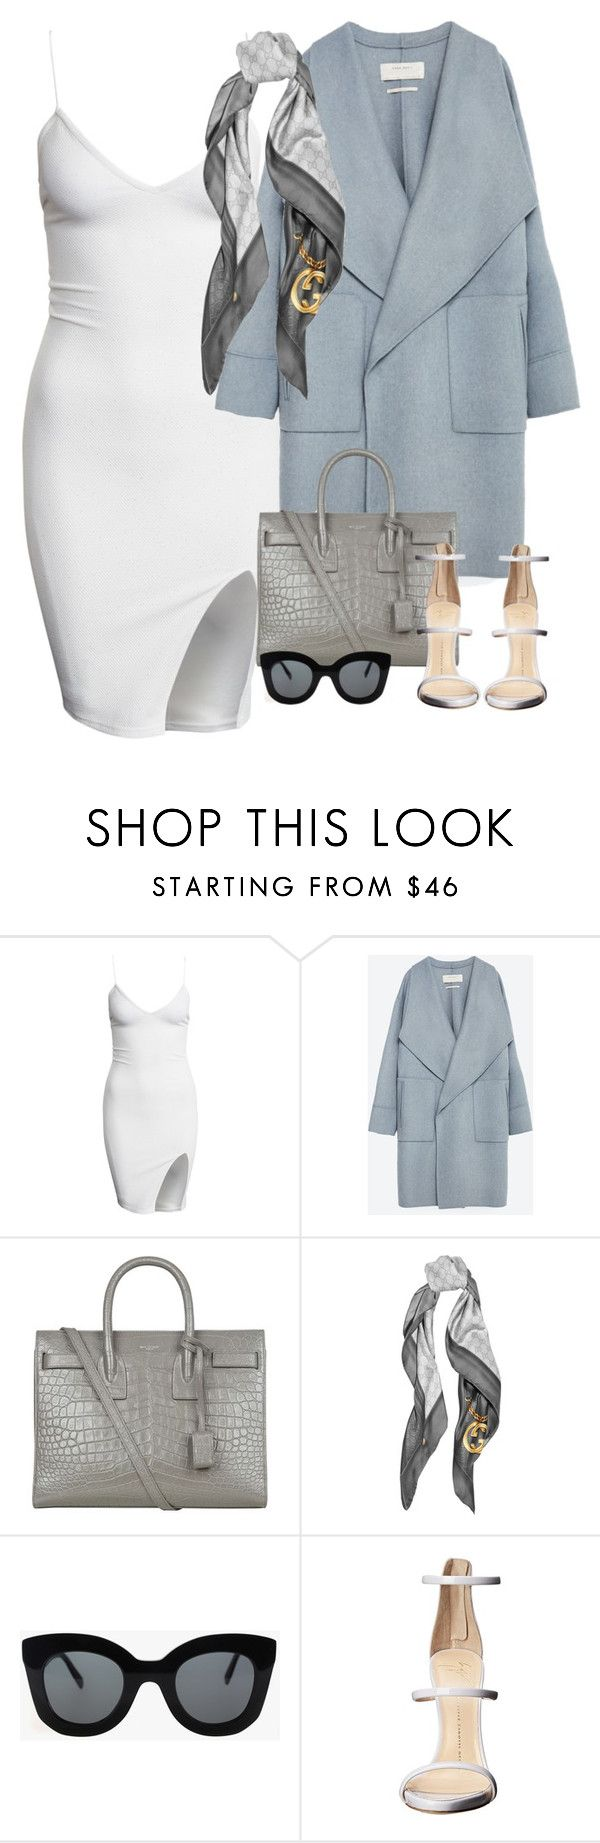 """""""Untitled #1574"""" by camila-echi ❤ liked on Polyvore featuring Zara, Yves Saint Laurent, Gucci, CÉLINE and Giuseppe Zanotti"""